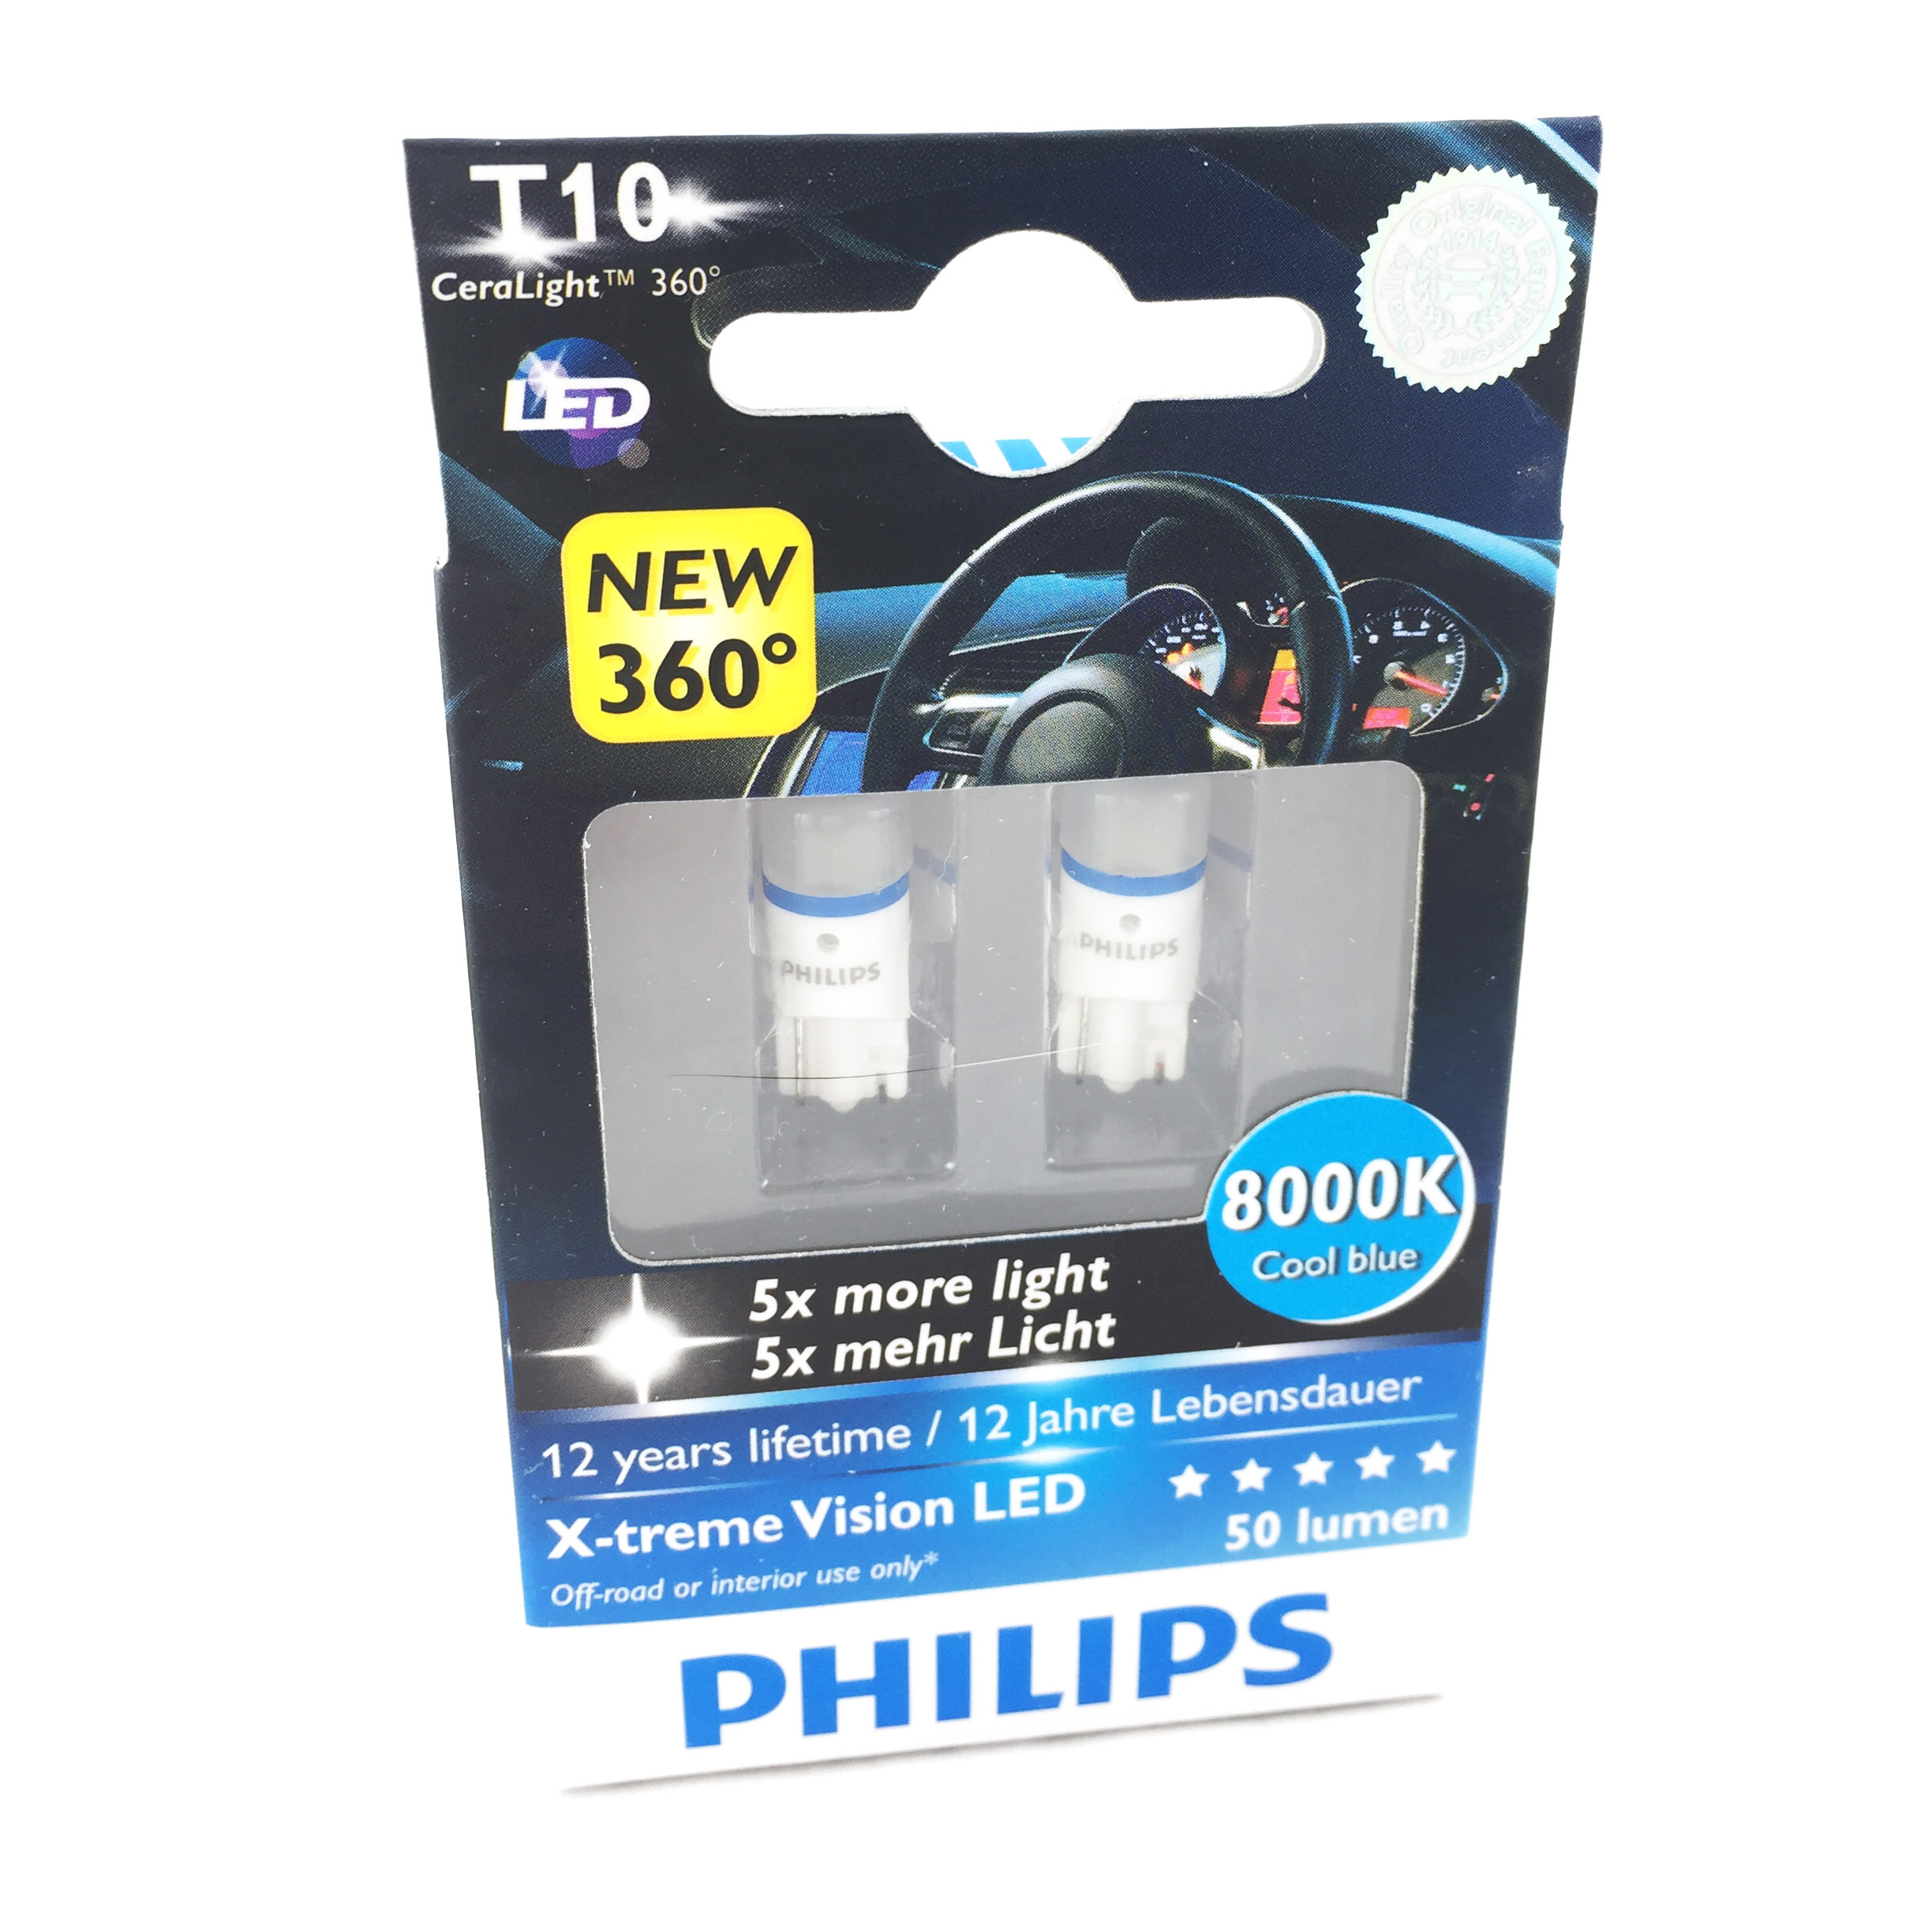 pack 2 ampoules t10 philips ceralight 360 x treme vision led 8000k culot w5w yakaequiper. Black Bedroom Furniture Sets. Home Design Ideas